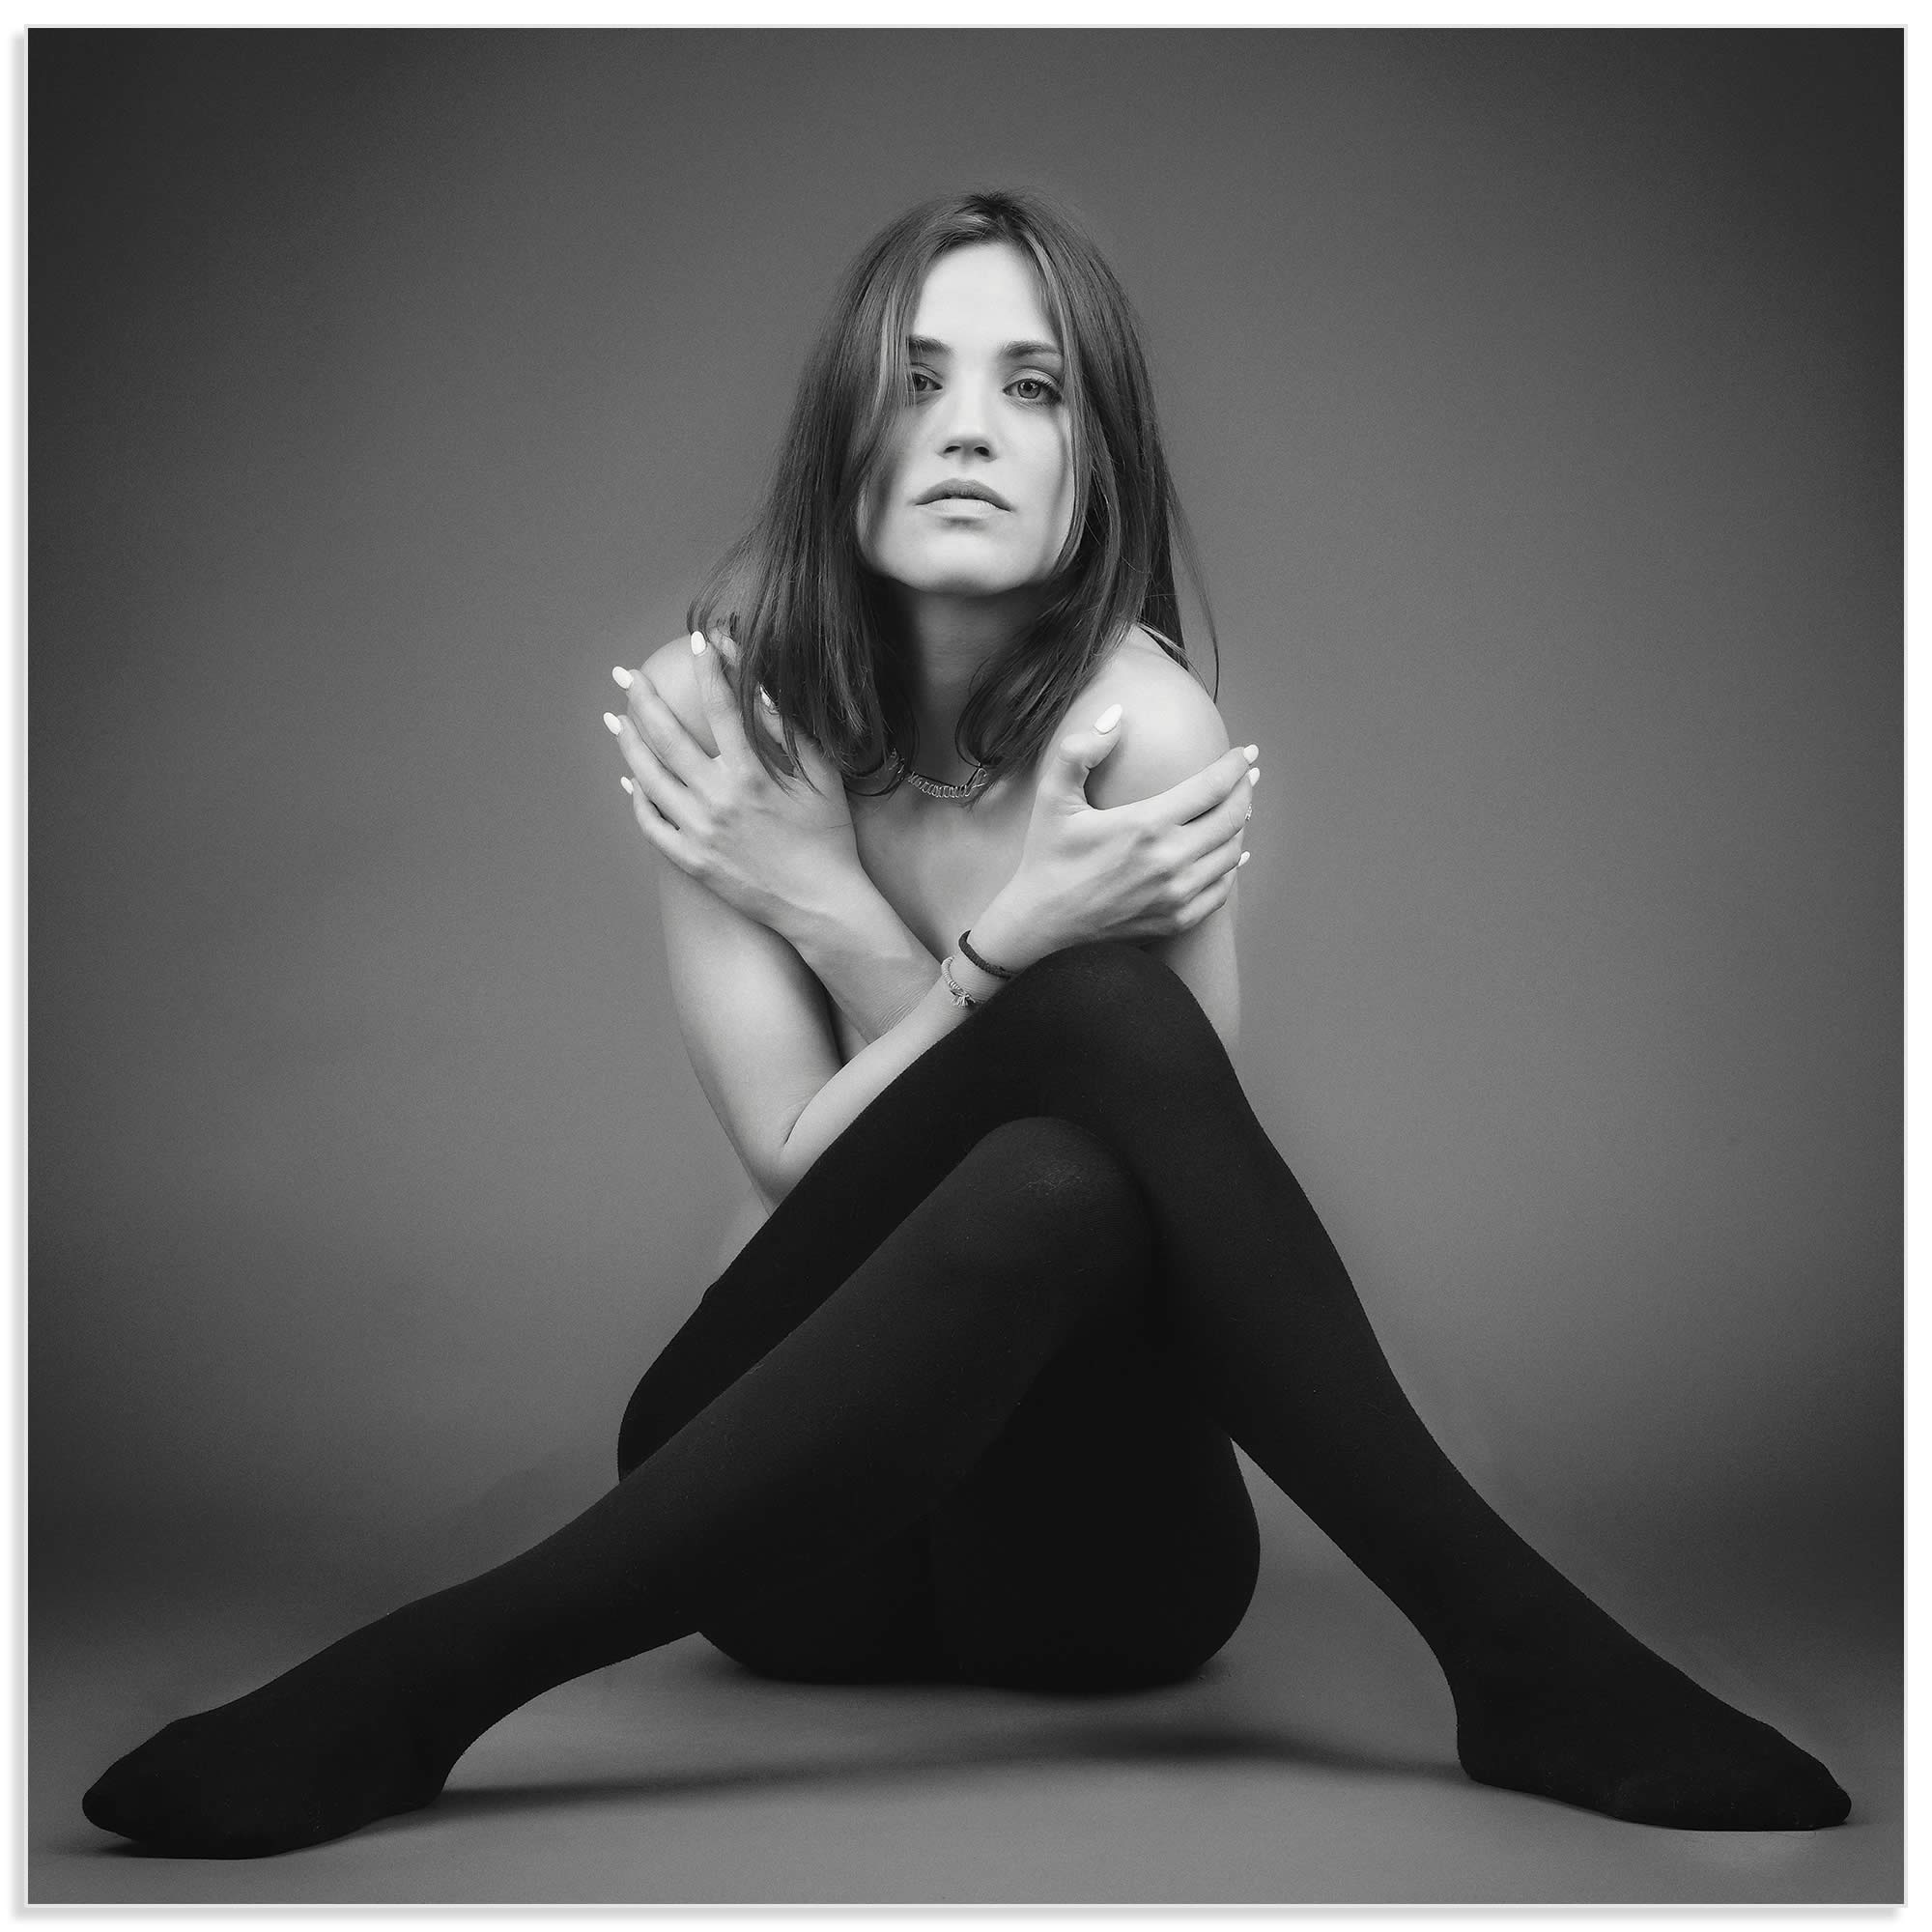 Stockings by Ilias Agiostratitis - Model Photography on Metal or Acrylic - Alternate View 2